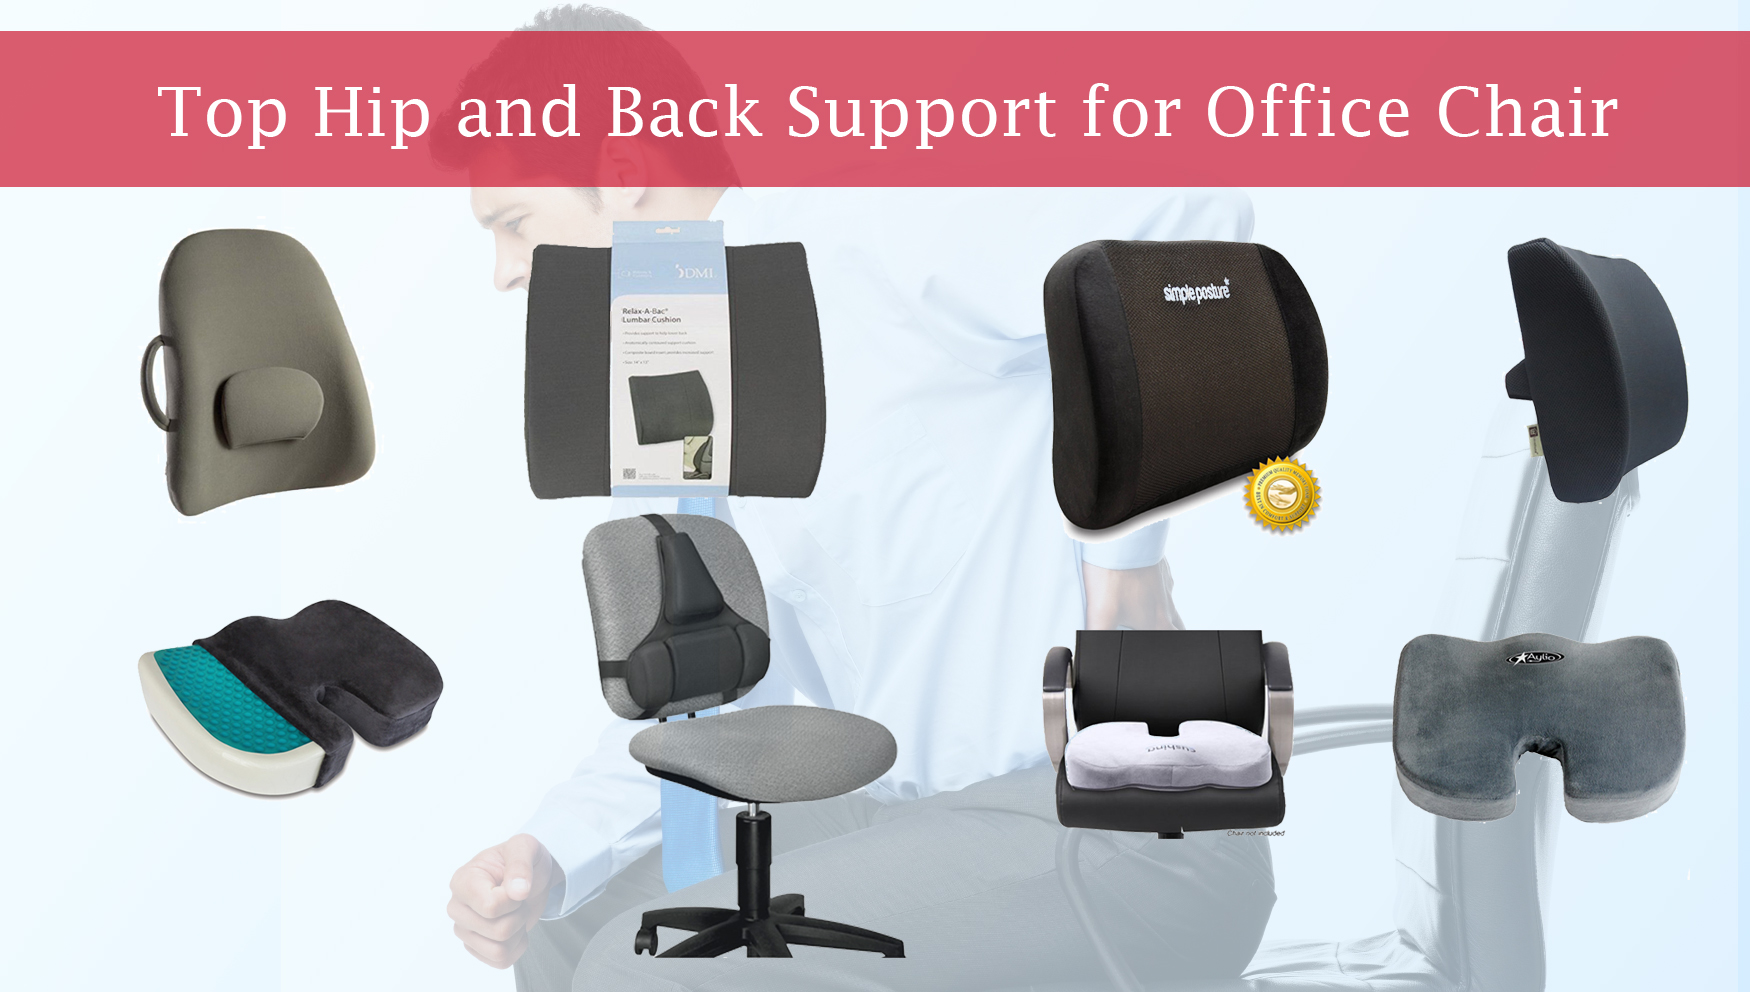 Top Hip And Back Support For Office Chair